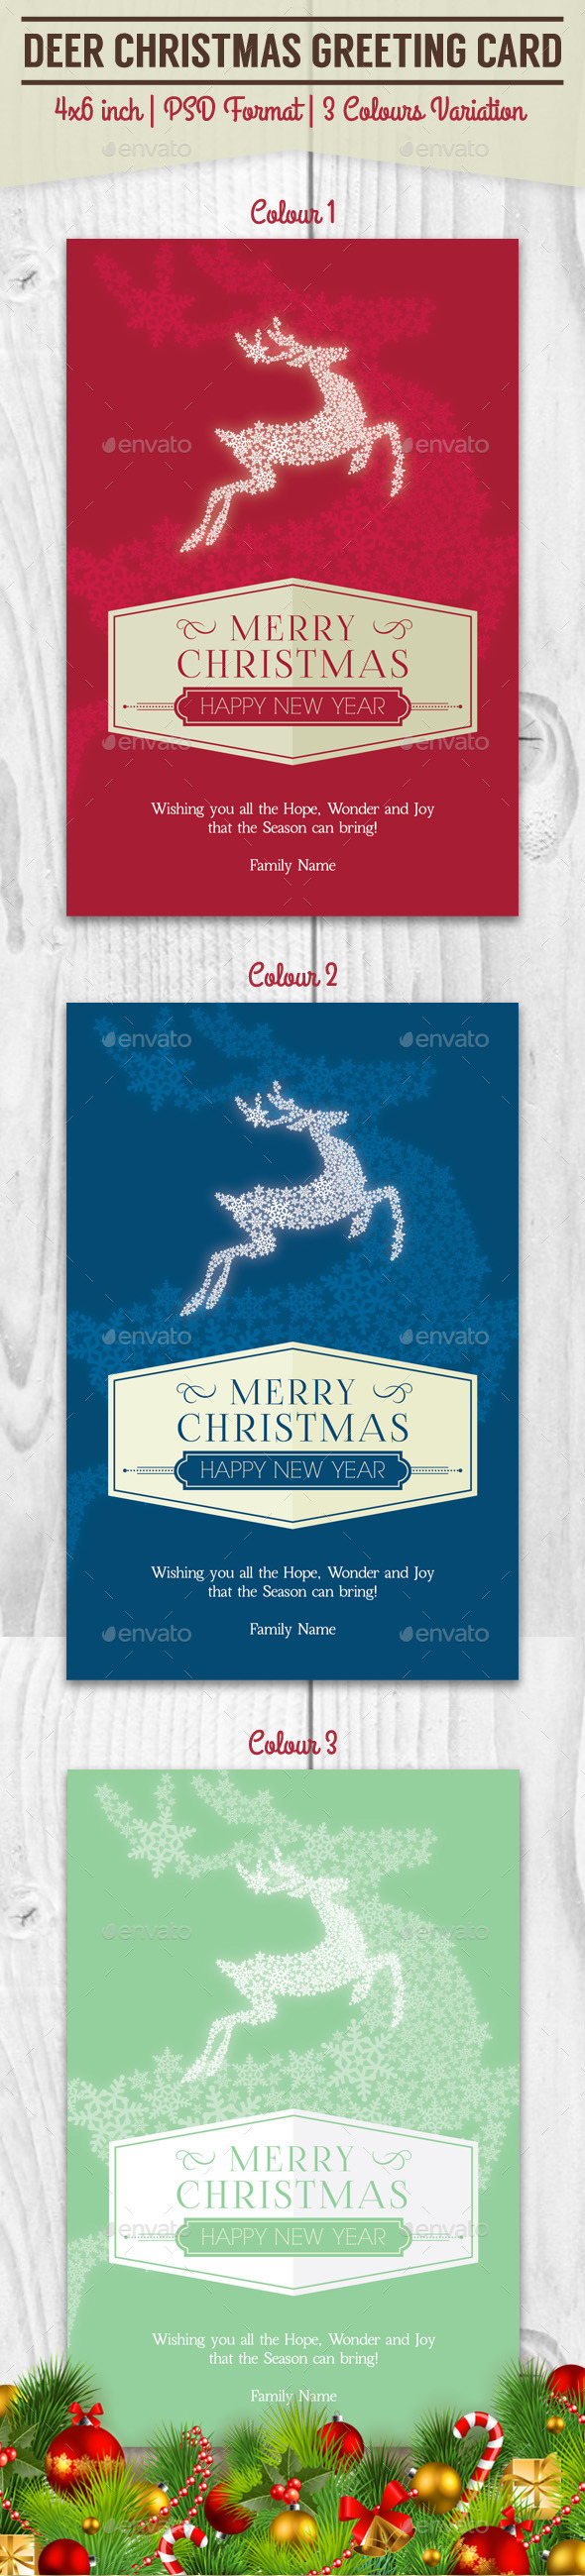 GraphicRiver Deer Christmas Greeting Card 9543111